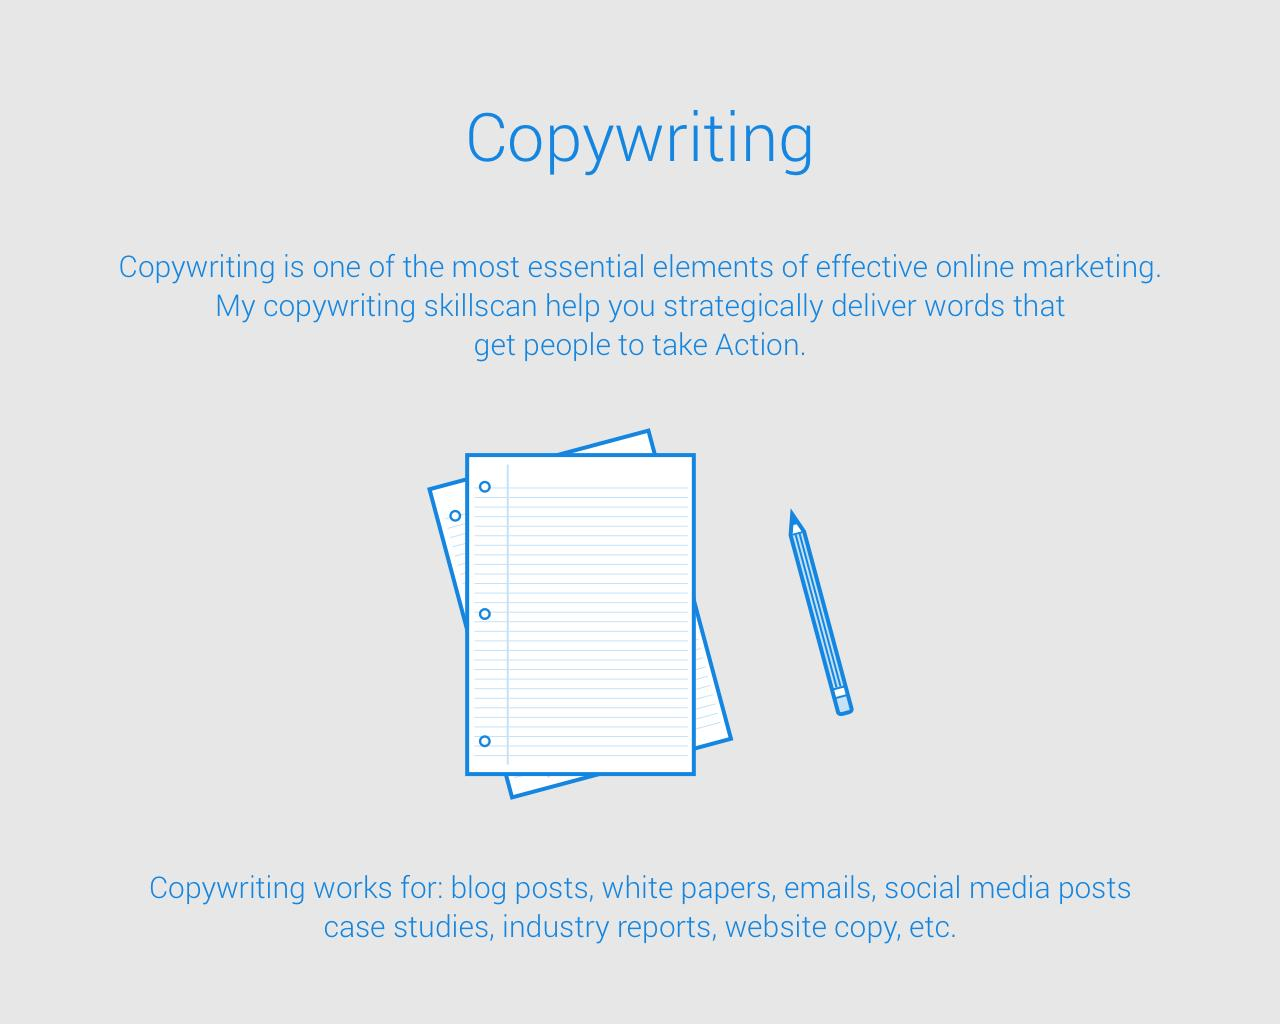 Copywriting by eddienewman - 102564